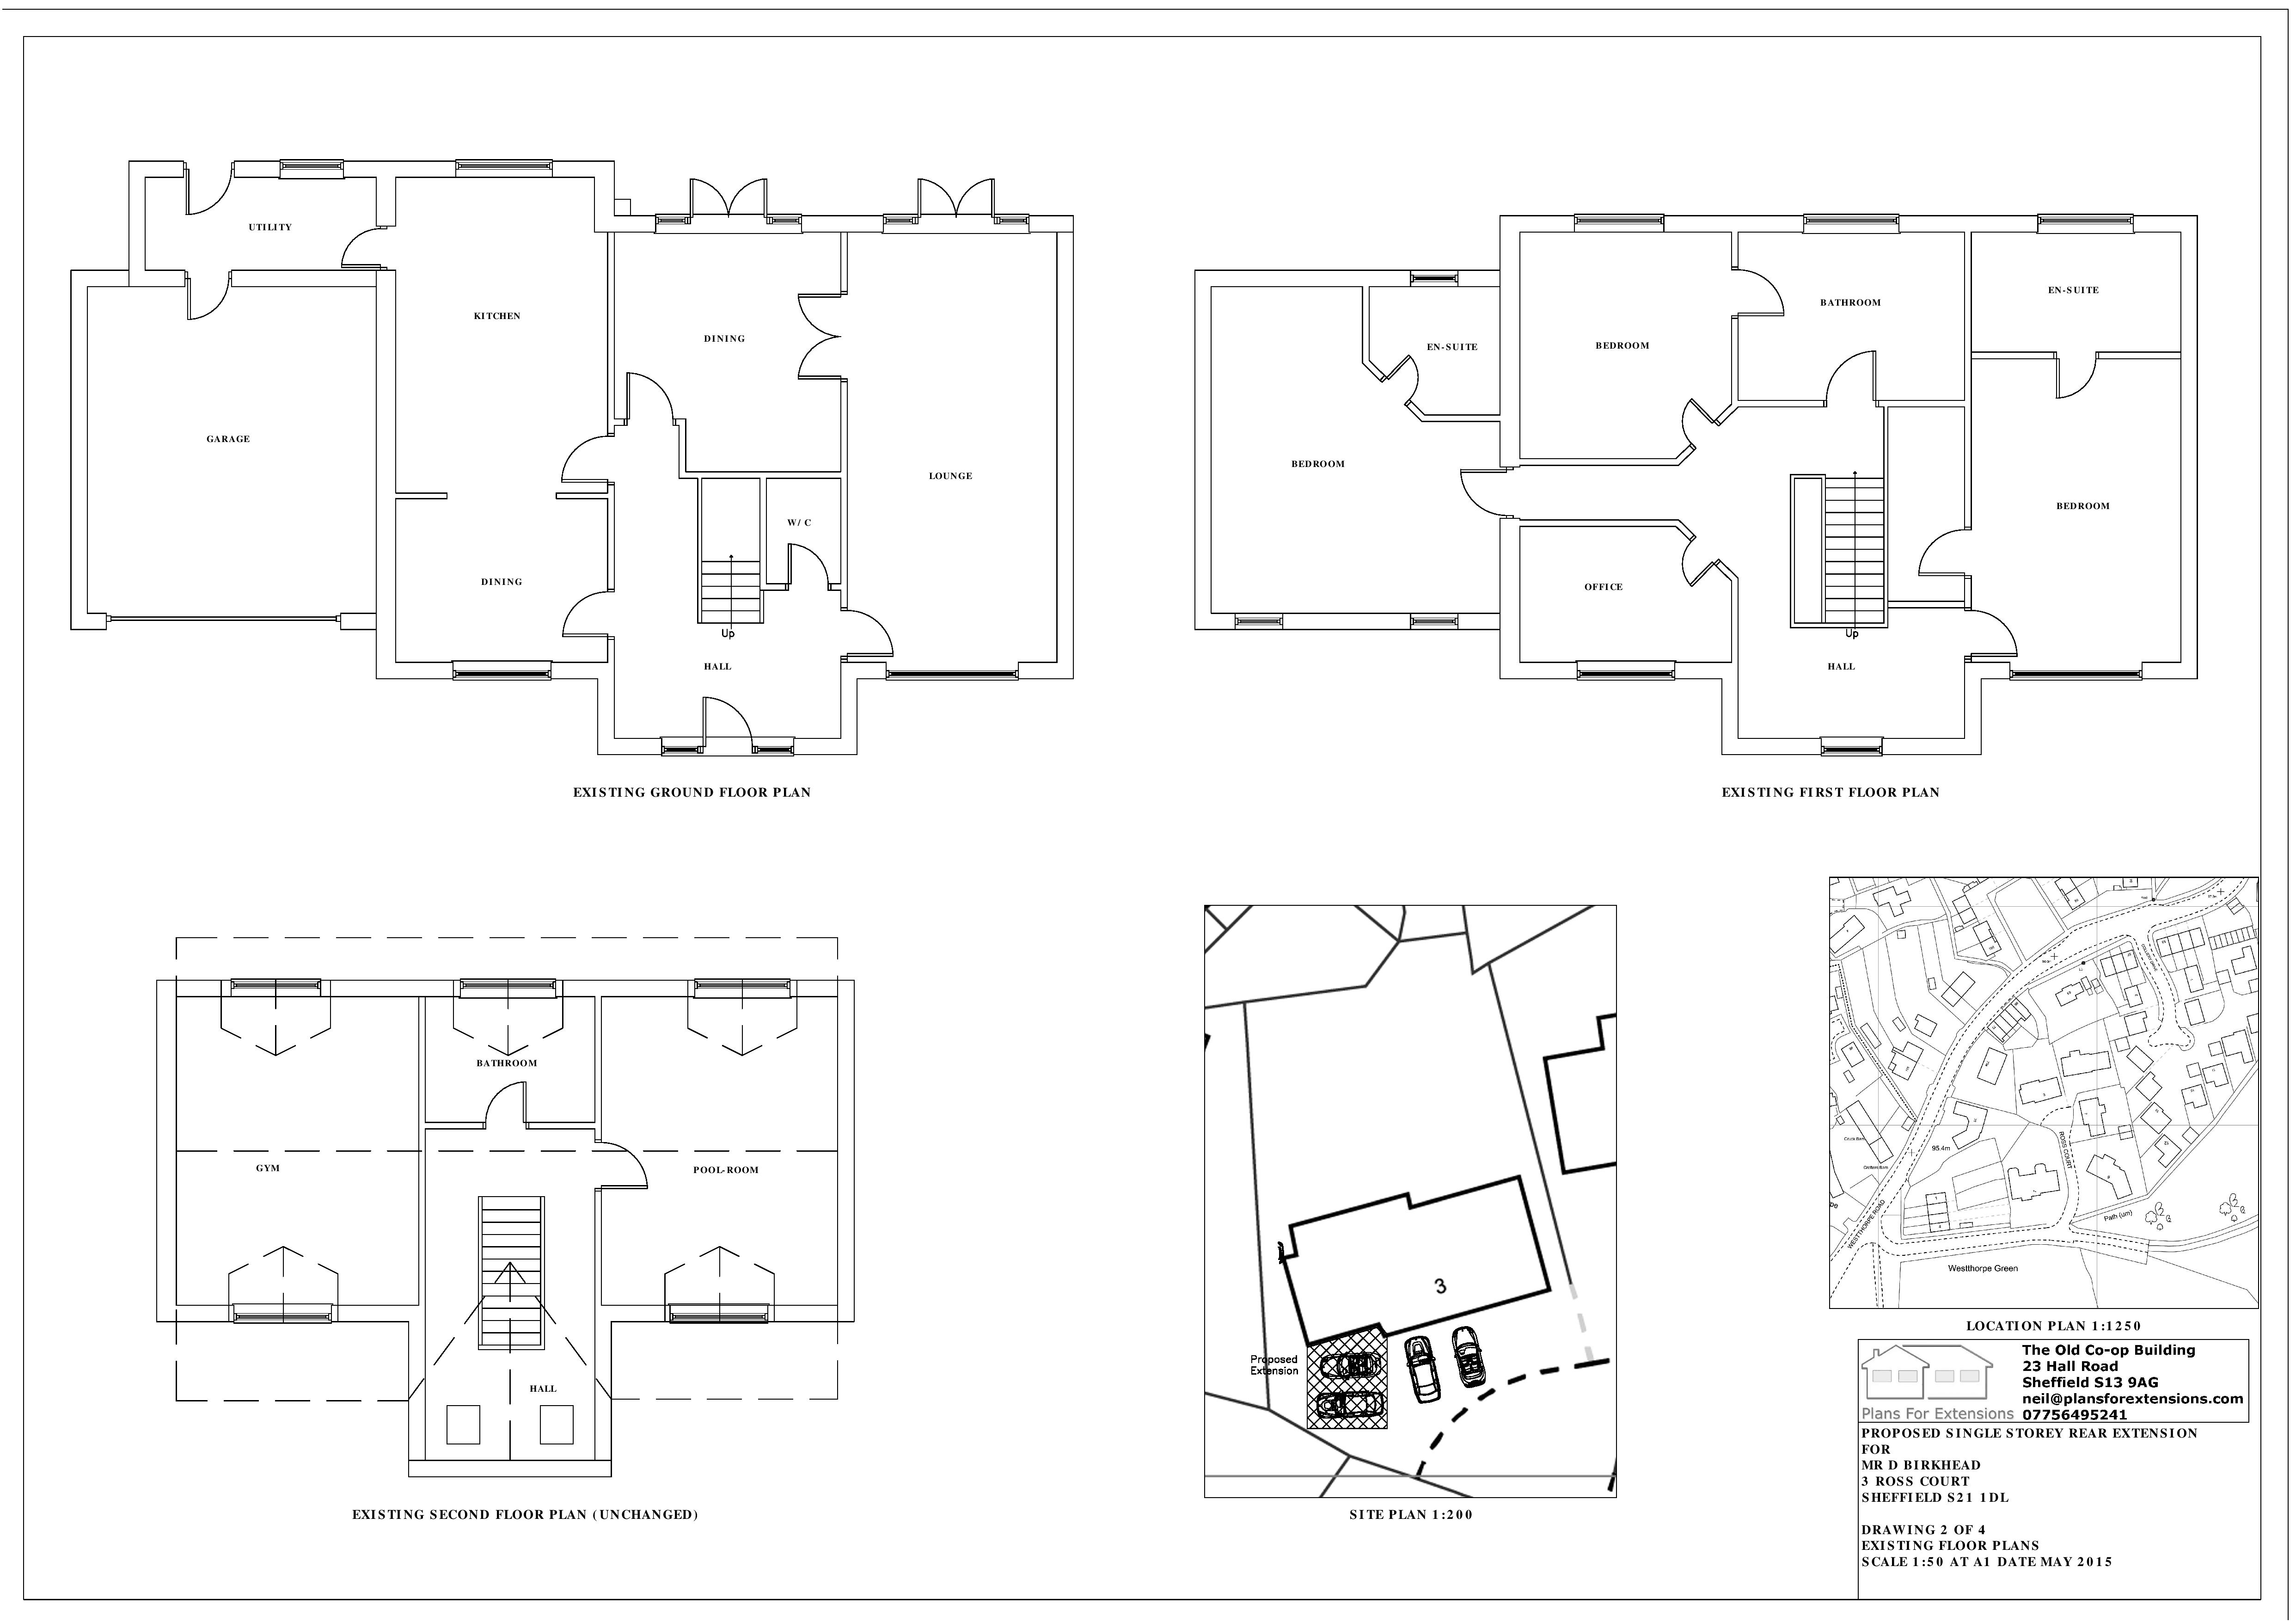 Plans - Existing Floor Plans